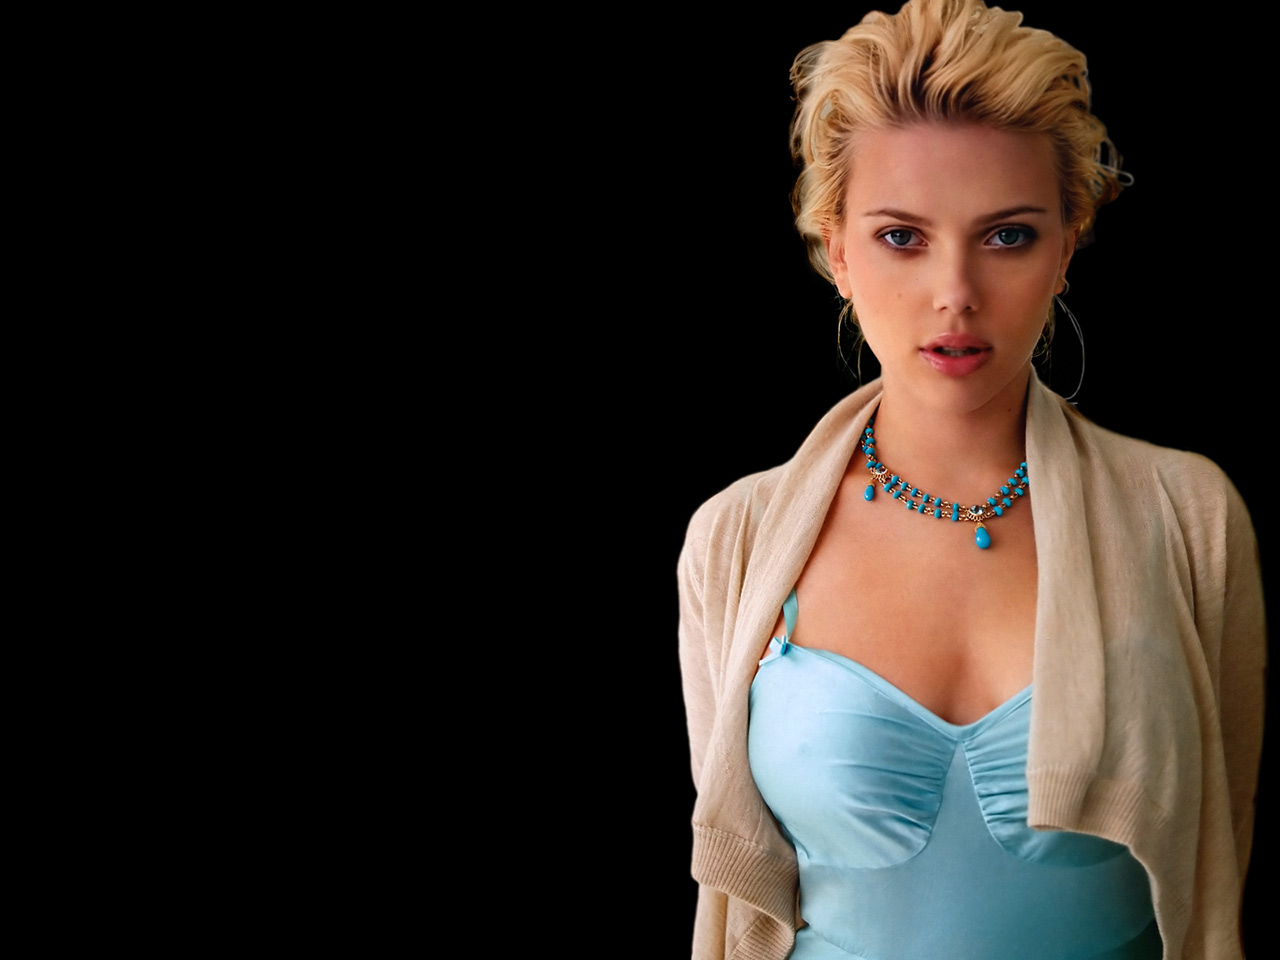 Scarlett Johansson Wallpaper: 4menandamom: Scarlett Johansson Wallpapers